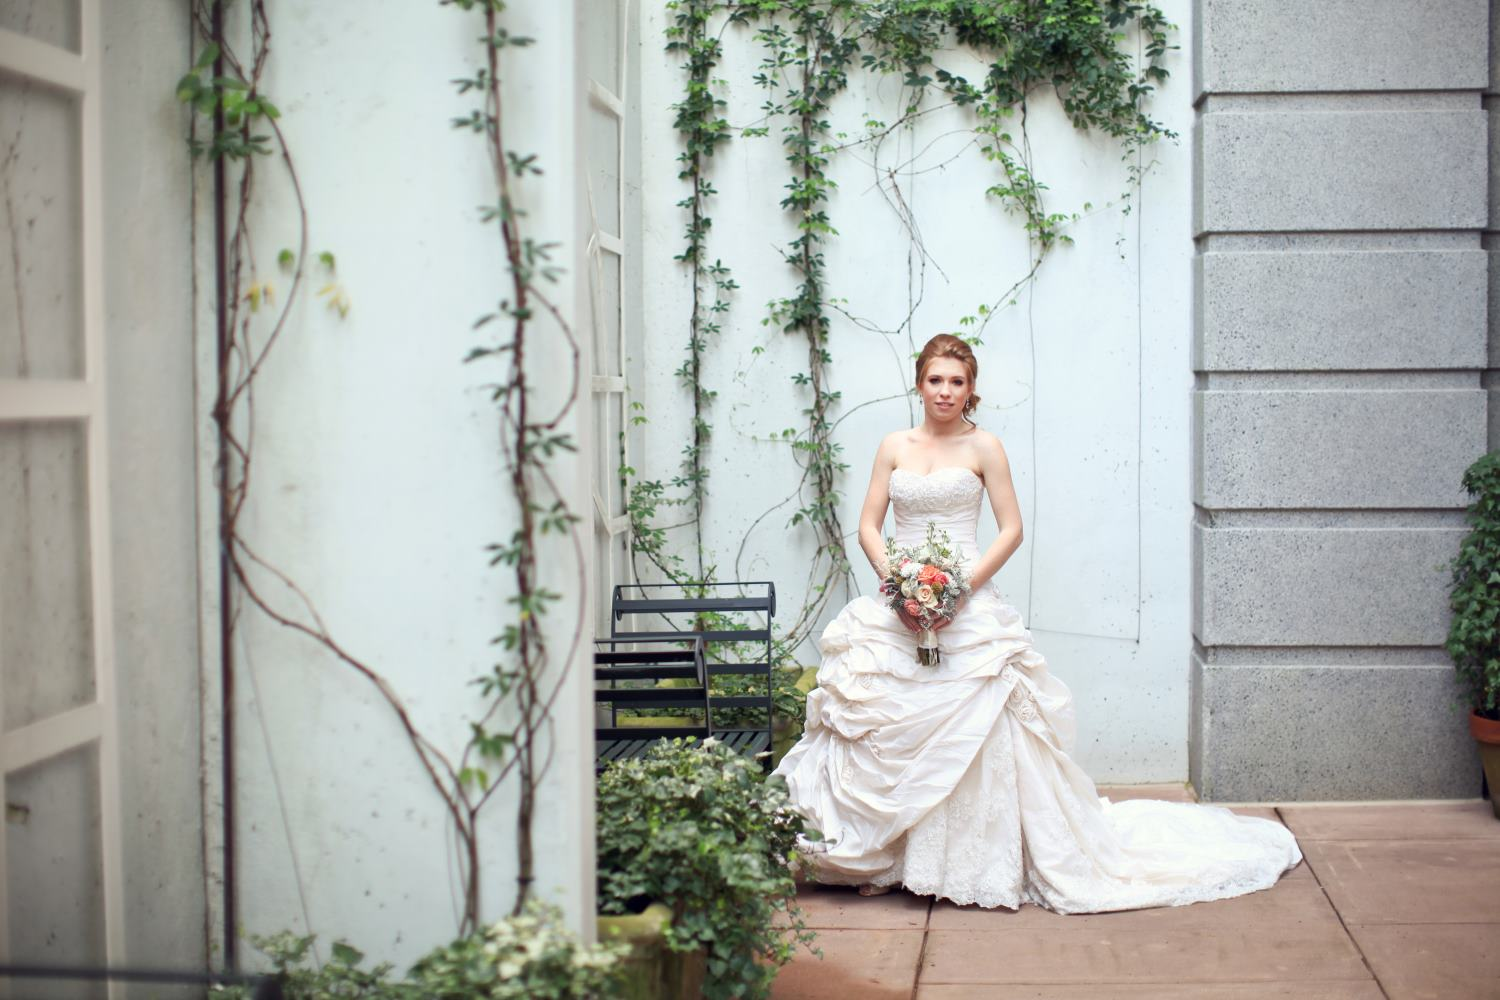 Bridal Portrait Package at O.Henry Hotel in Greensboro, NC